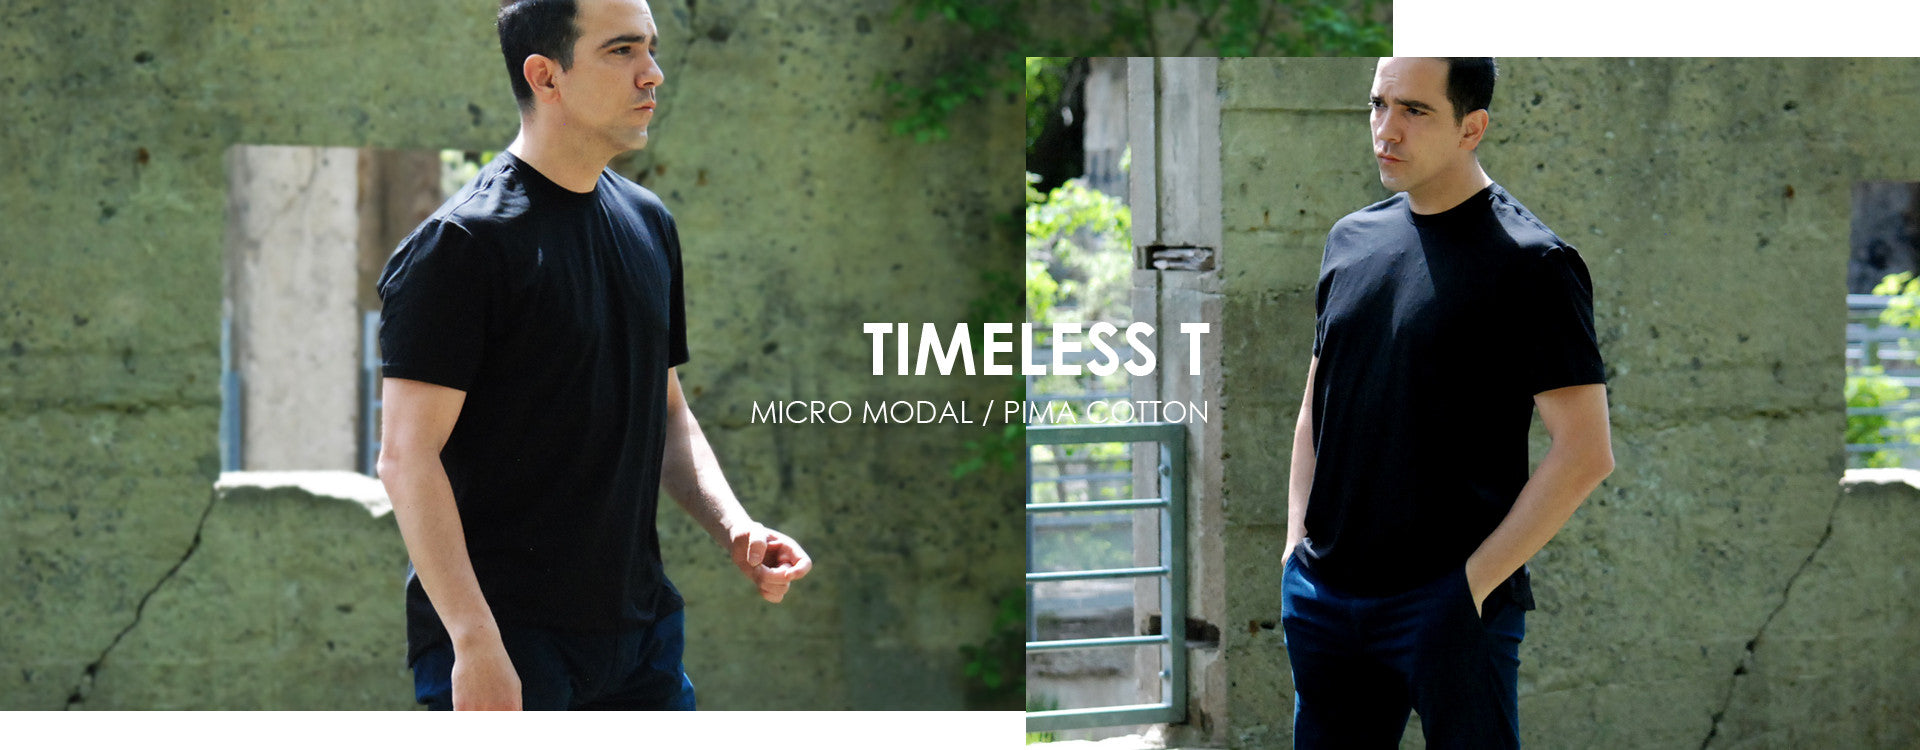 Mackenzie and Park Timeless T shirt in Micro Modal/Pima Totton